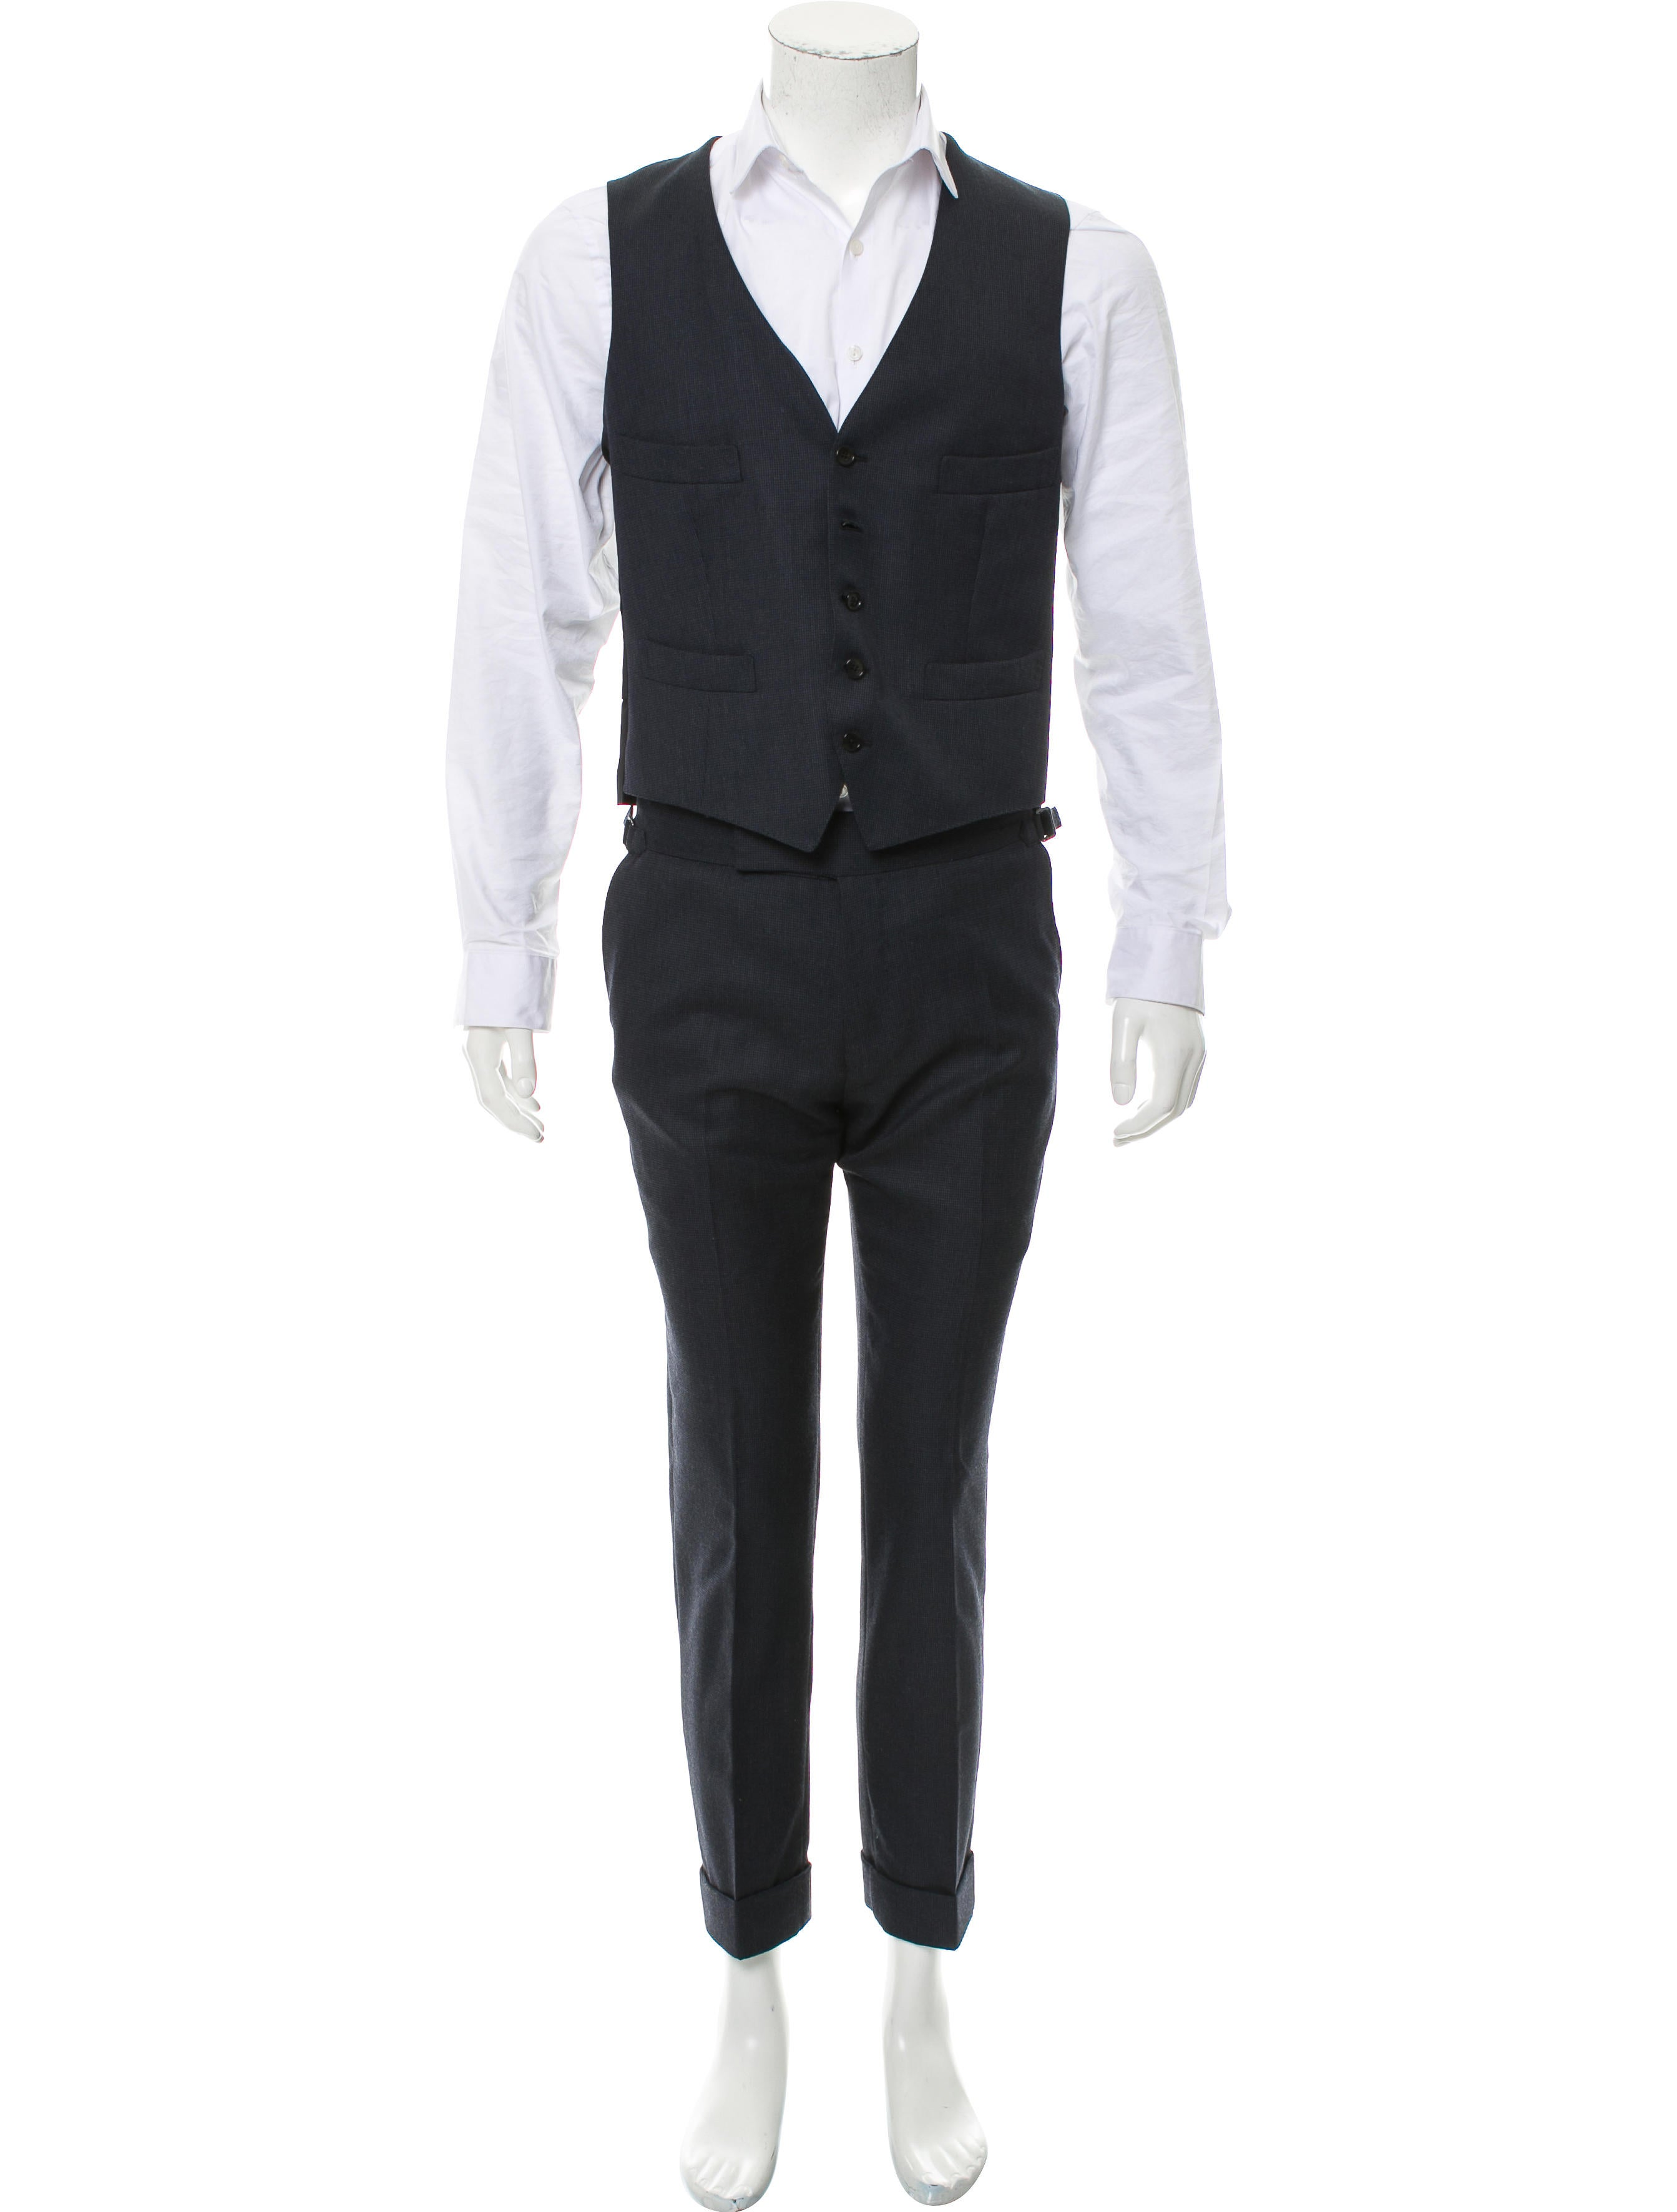 Tom ford double breasted suits